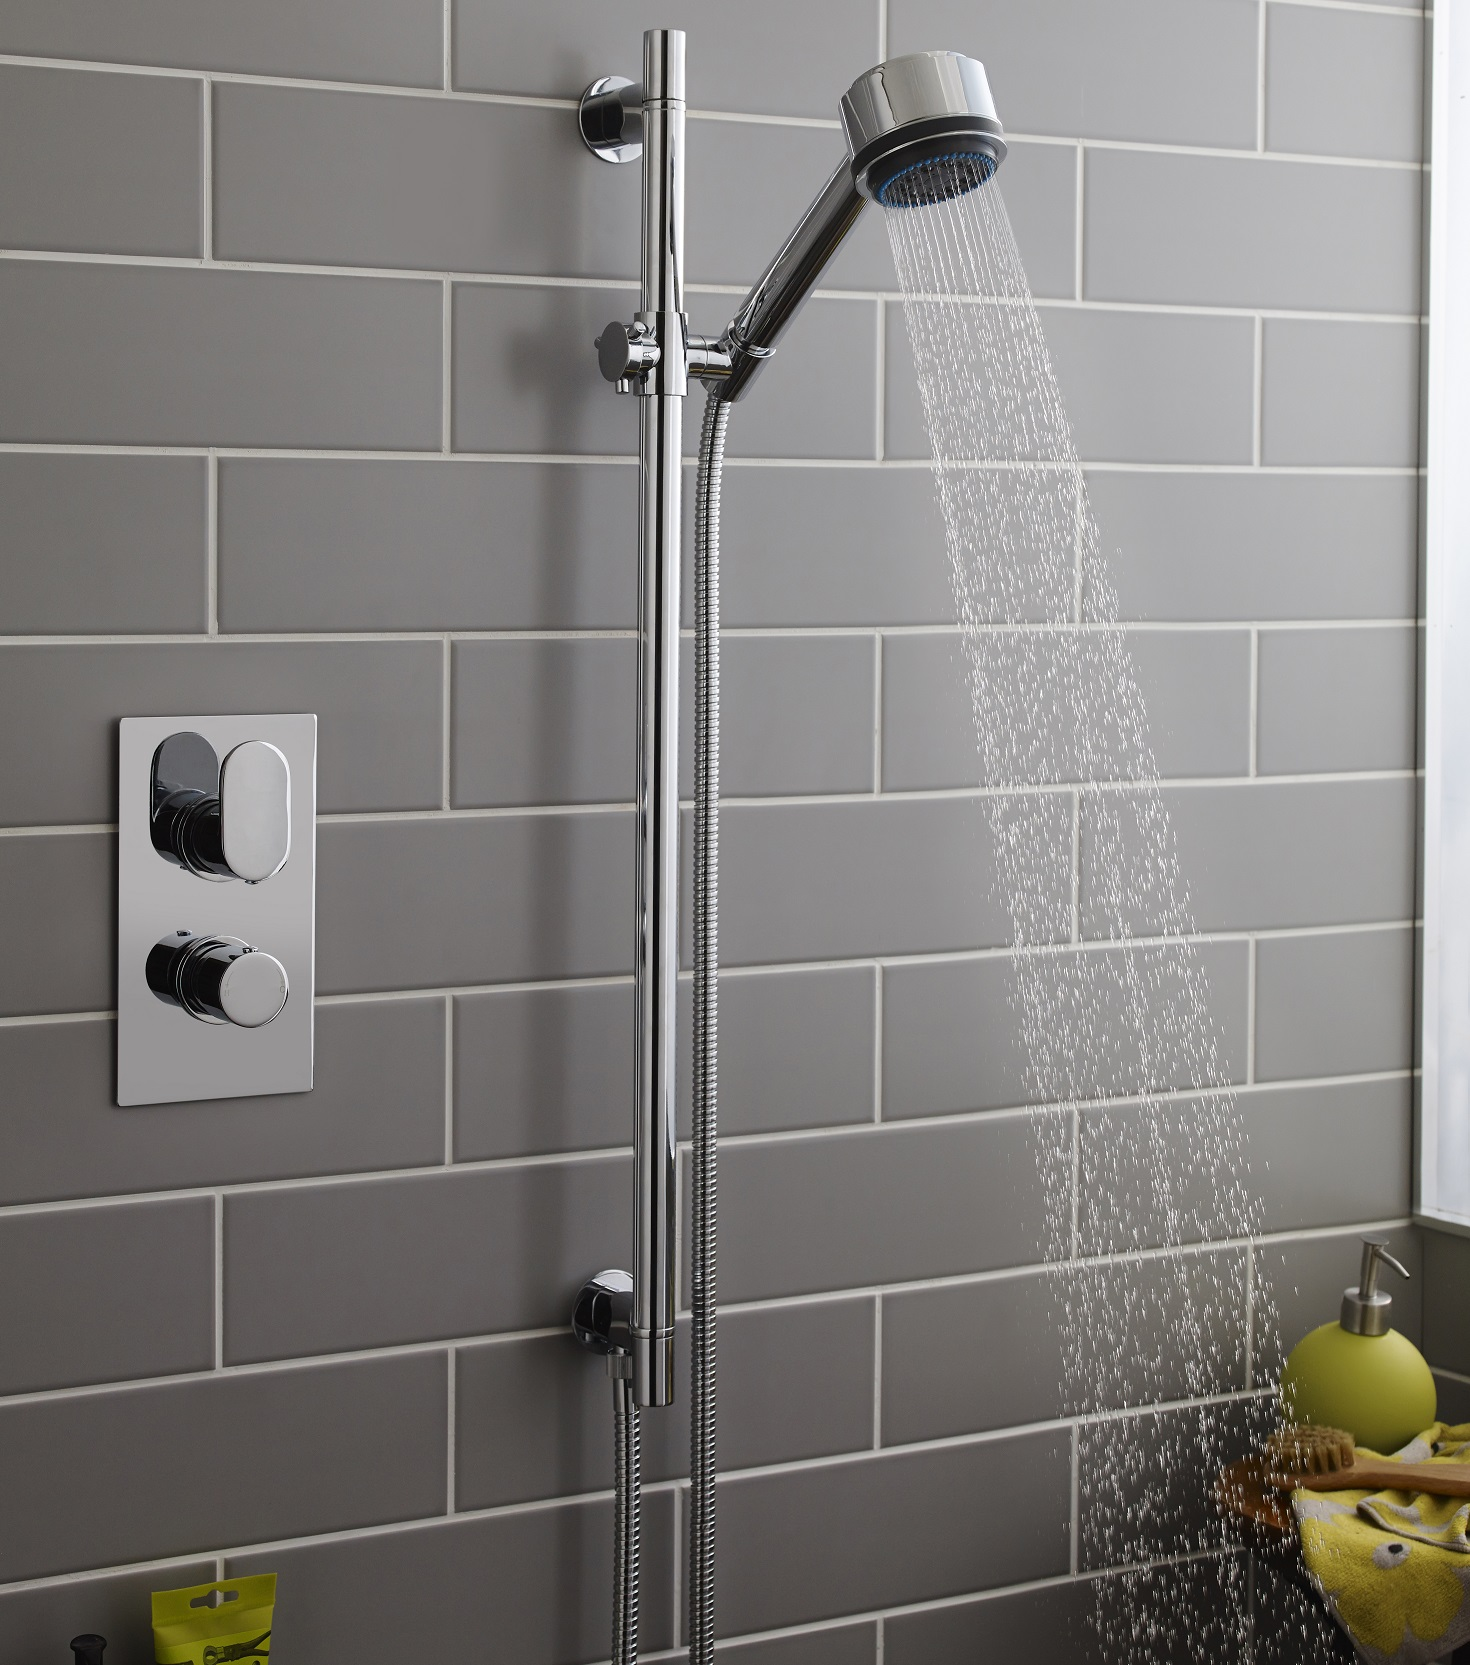 Shower Kit Against A Grey Tiled Wall